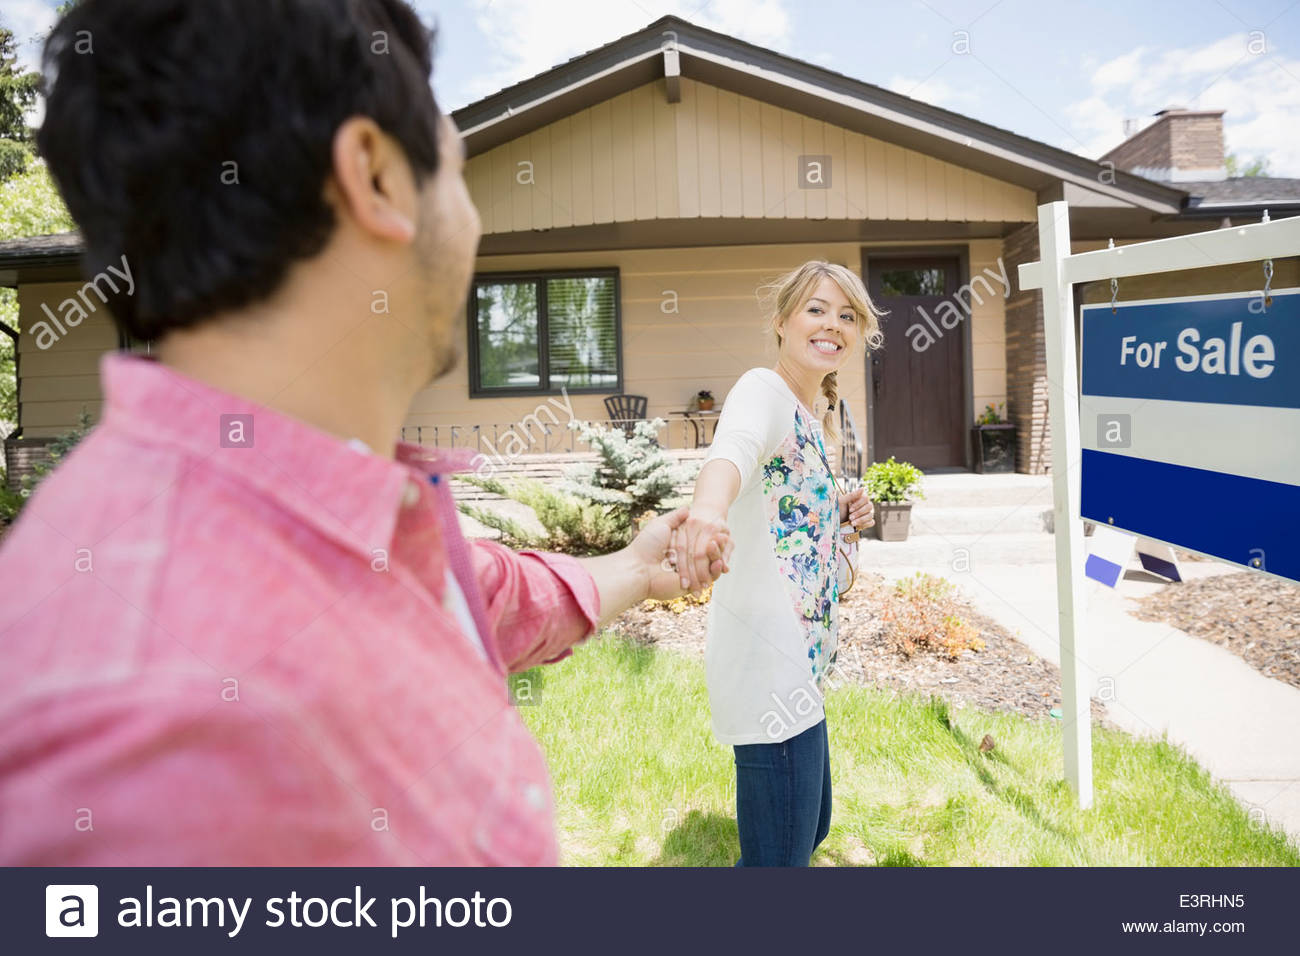 Couple holding hands outside house for sale - Stock Image